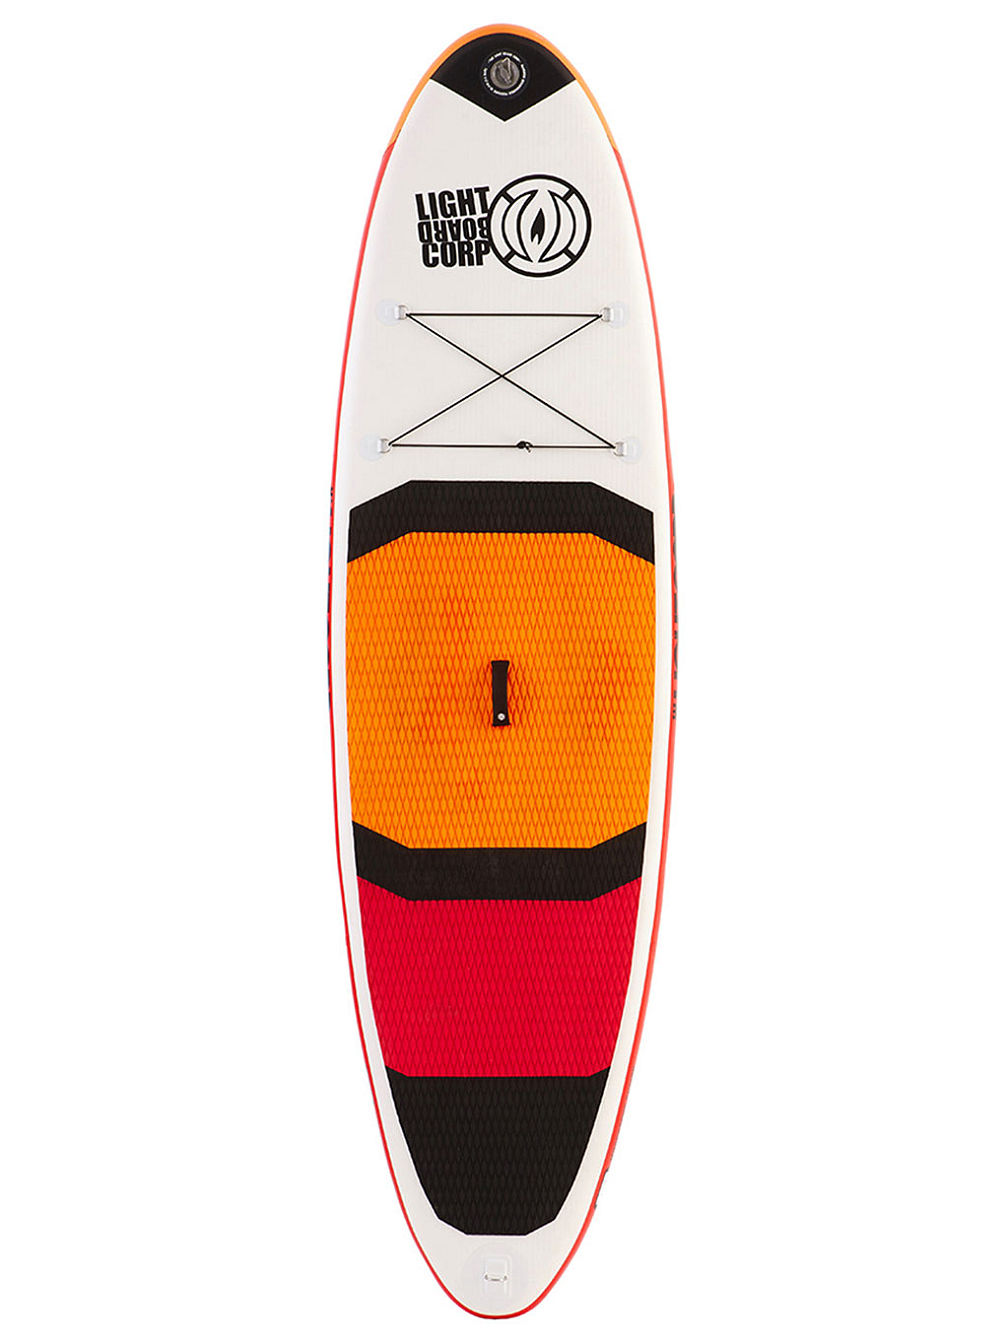 Allround Monocoque 9.8 SUP Board